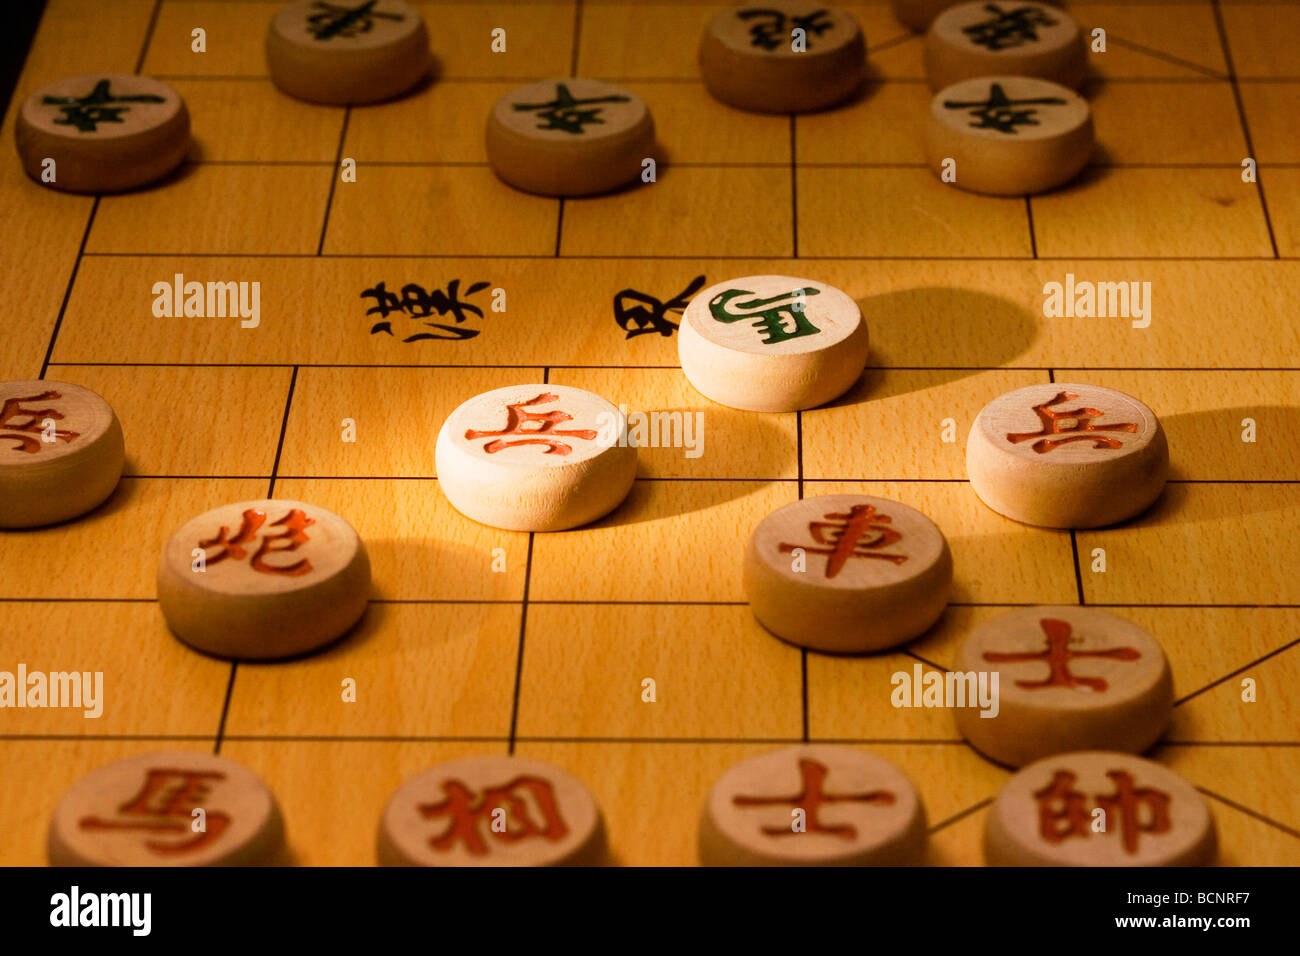 Close-up of Chinese Chess game - Stock Image